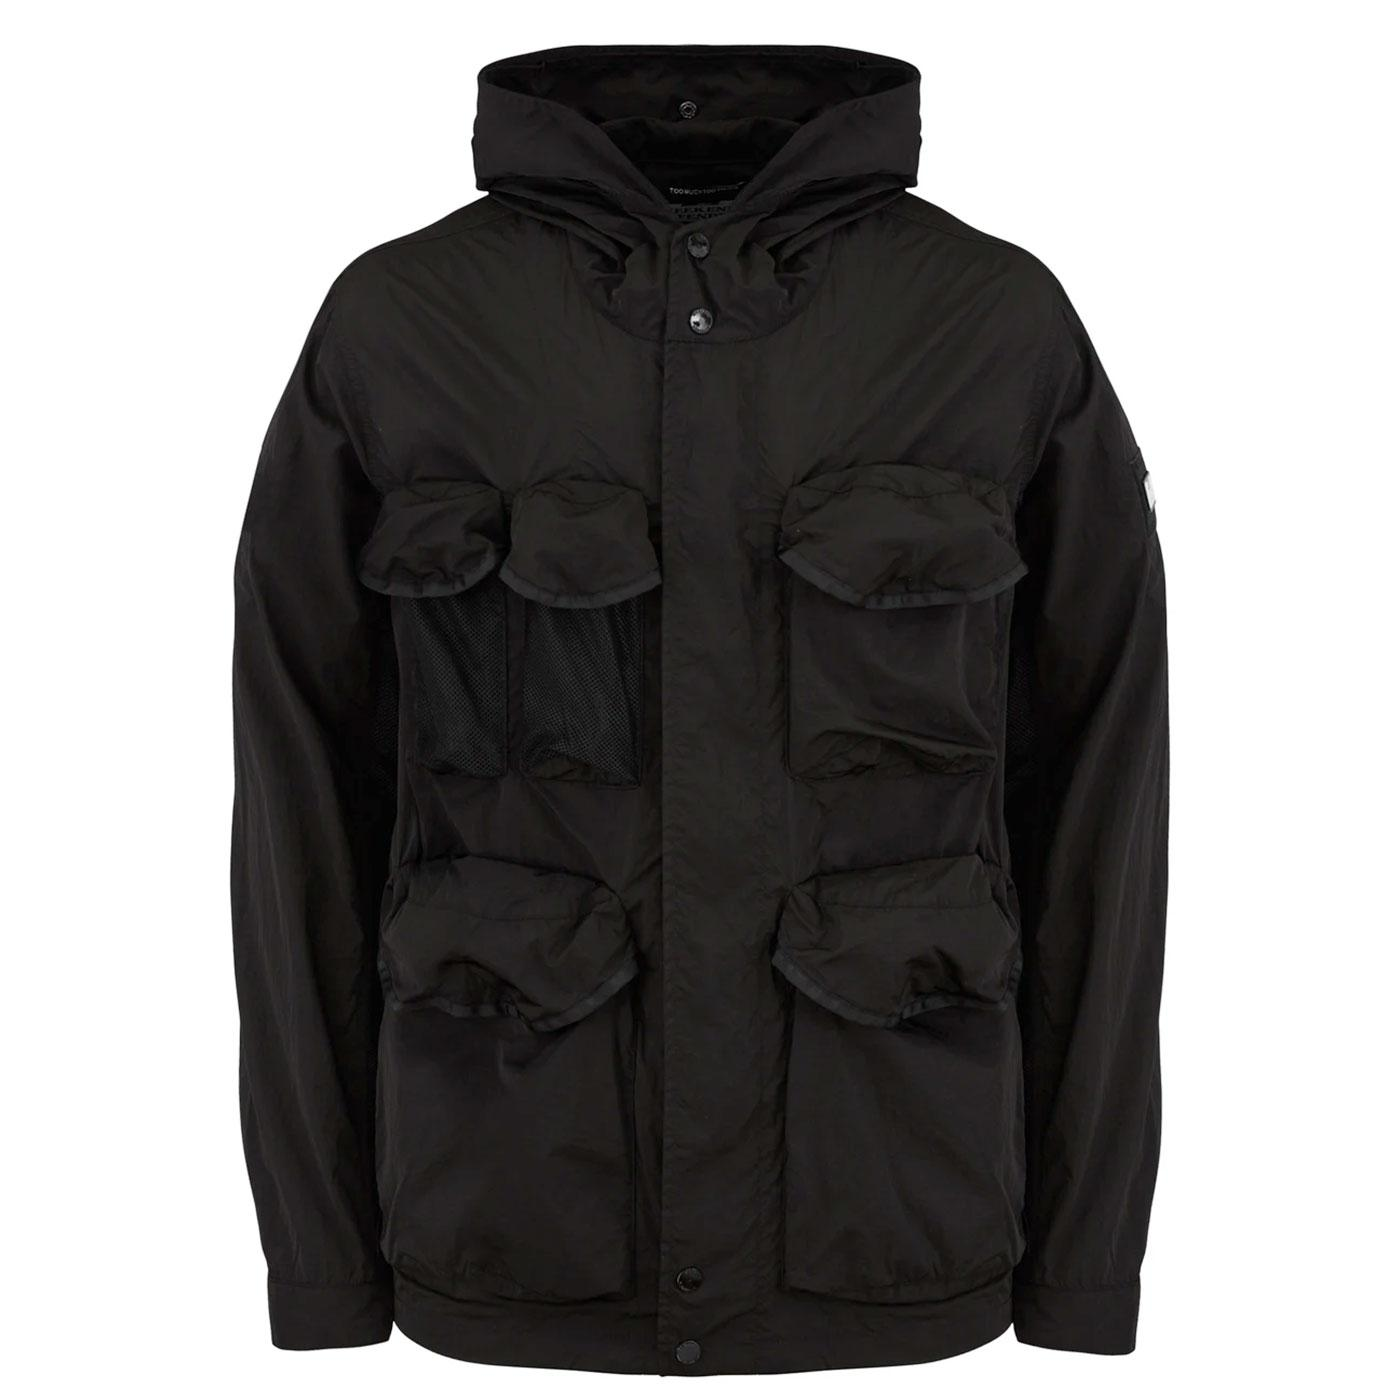 Devito WEEKEND OFFENDER Hooded Military Jacket B